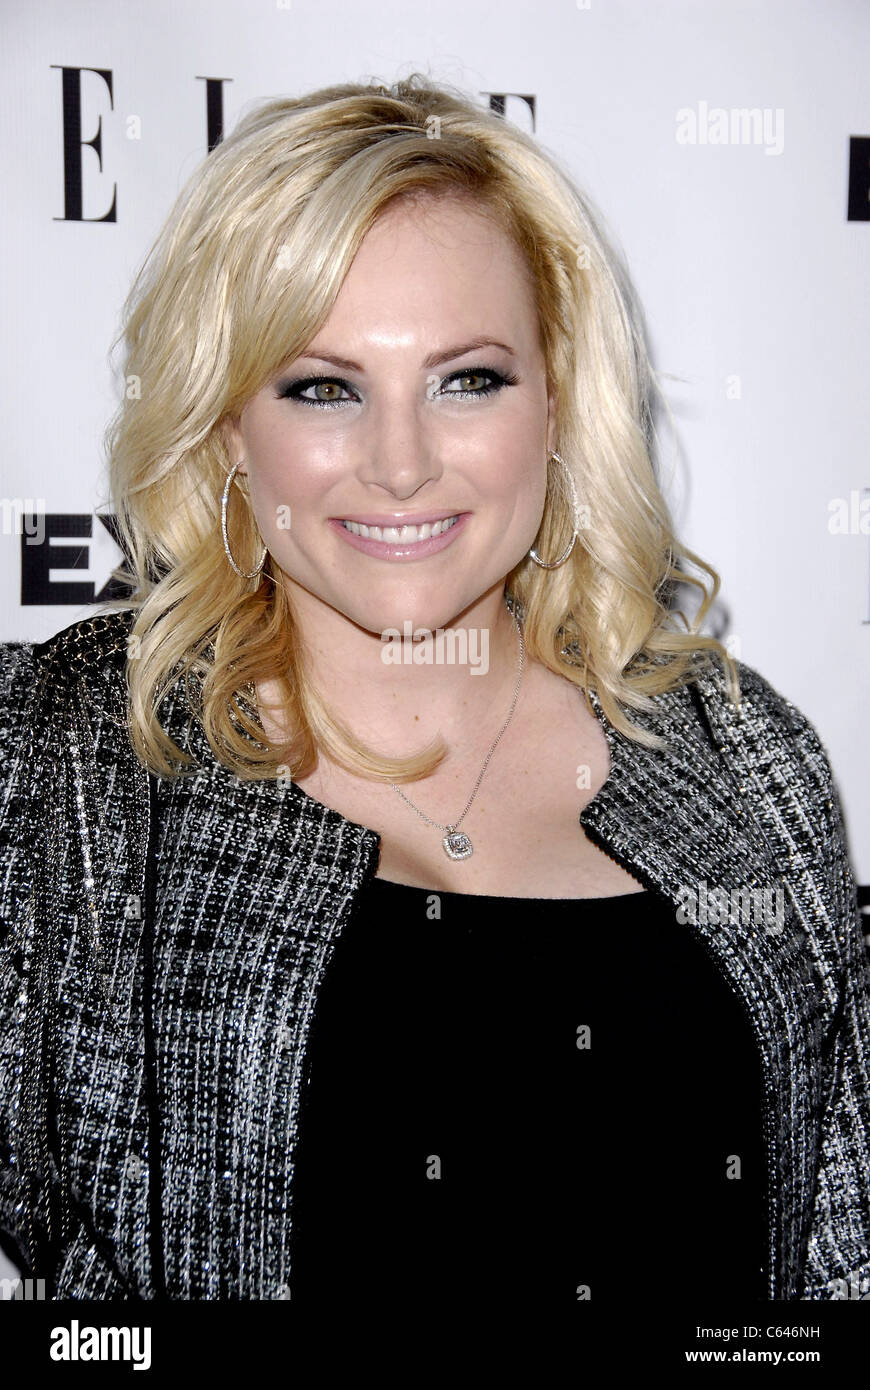 Meghan McCain at arrivals for ELLE and Express 25 at 25 Event, Palihouse in West Hollywood, Los Angeles, CA October - Stock Image